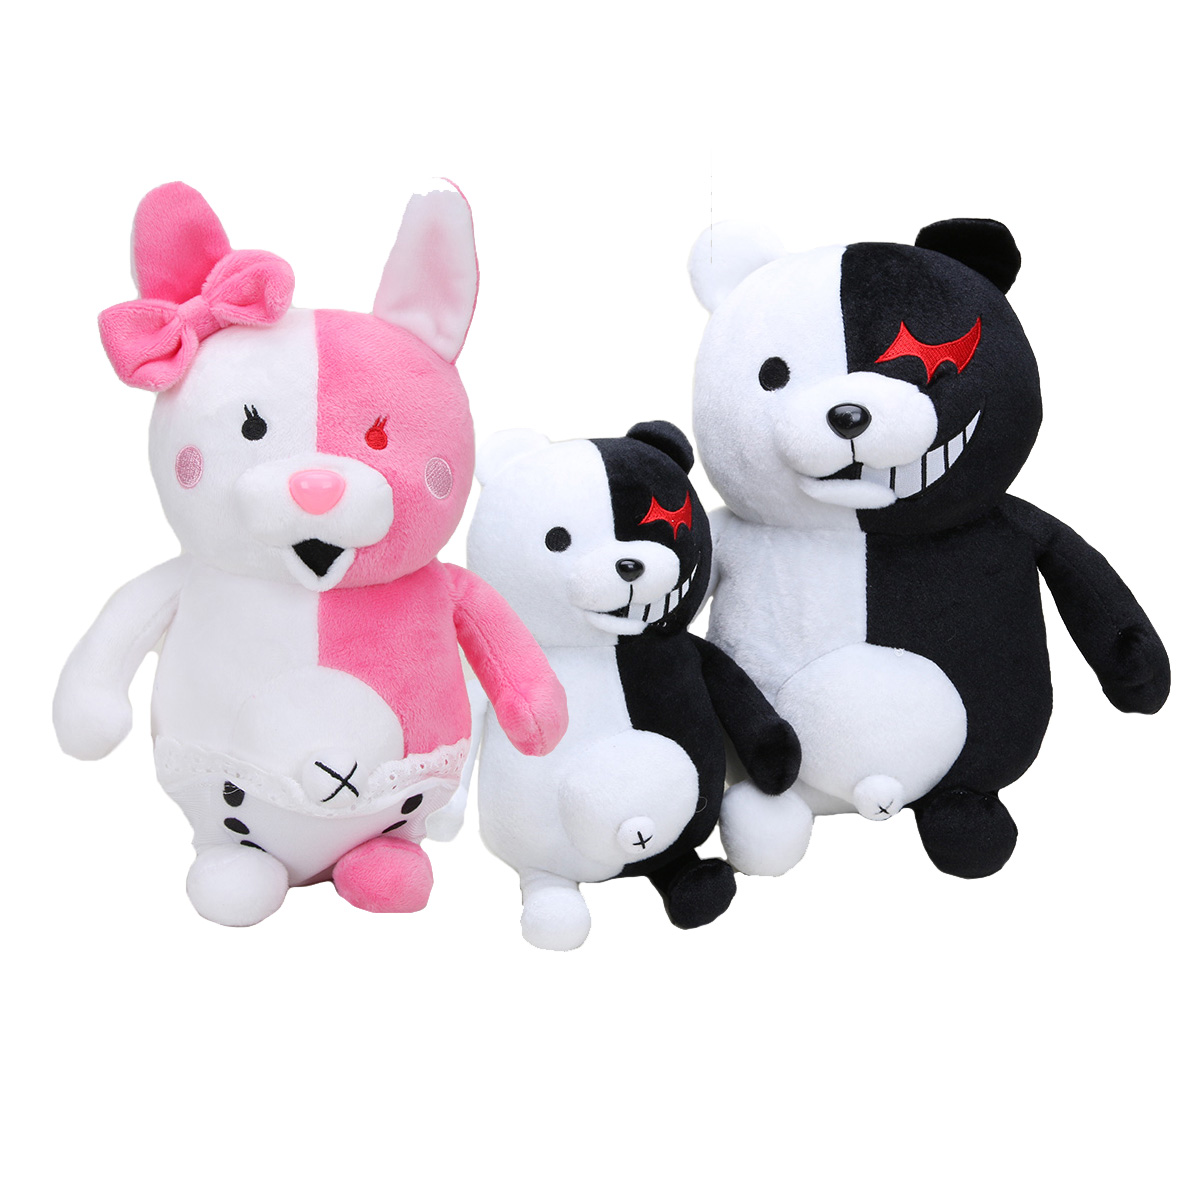 Monomi Rabbit Plush Toys Danganronpa black white Bear Rabbit Dangan Ronpa Monokuma Doll Birthday Toys for Children